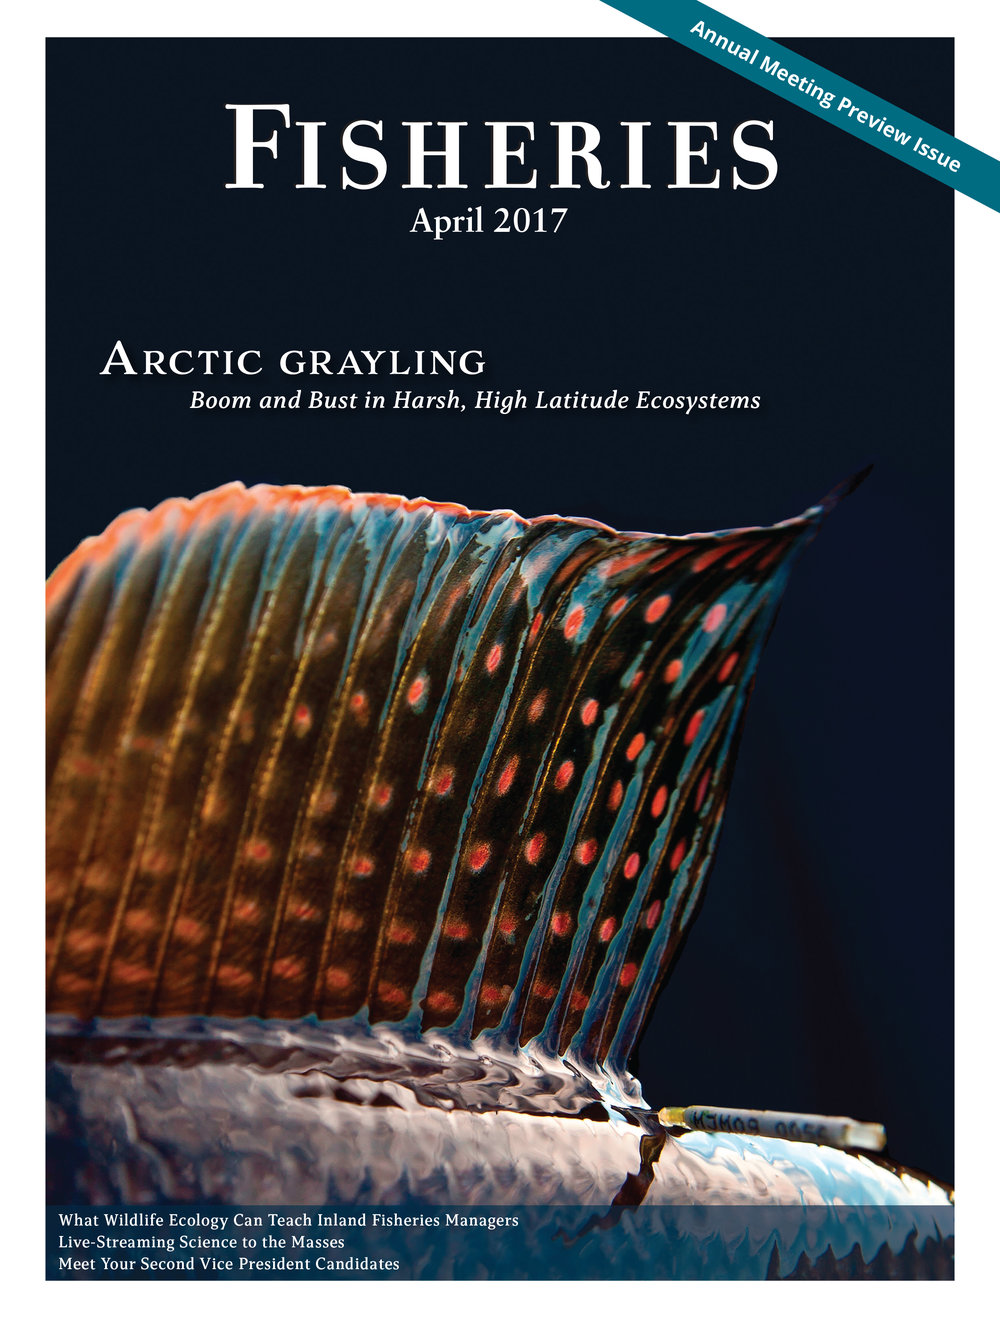 Fisheries Magazine, Cover (American Fisheries Society)